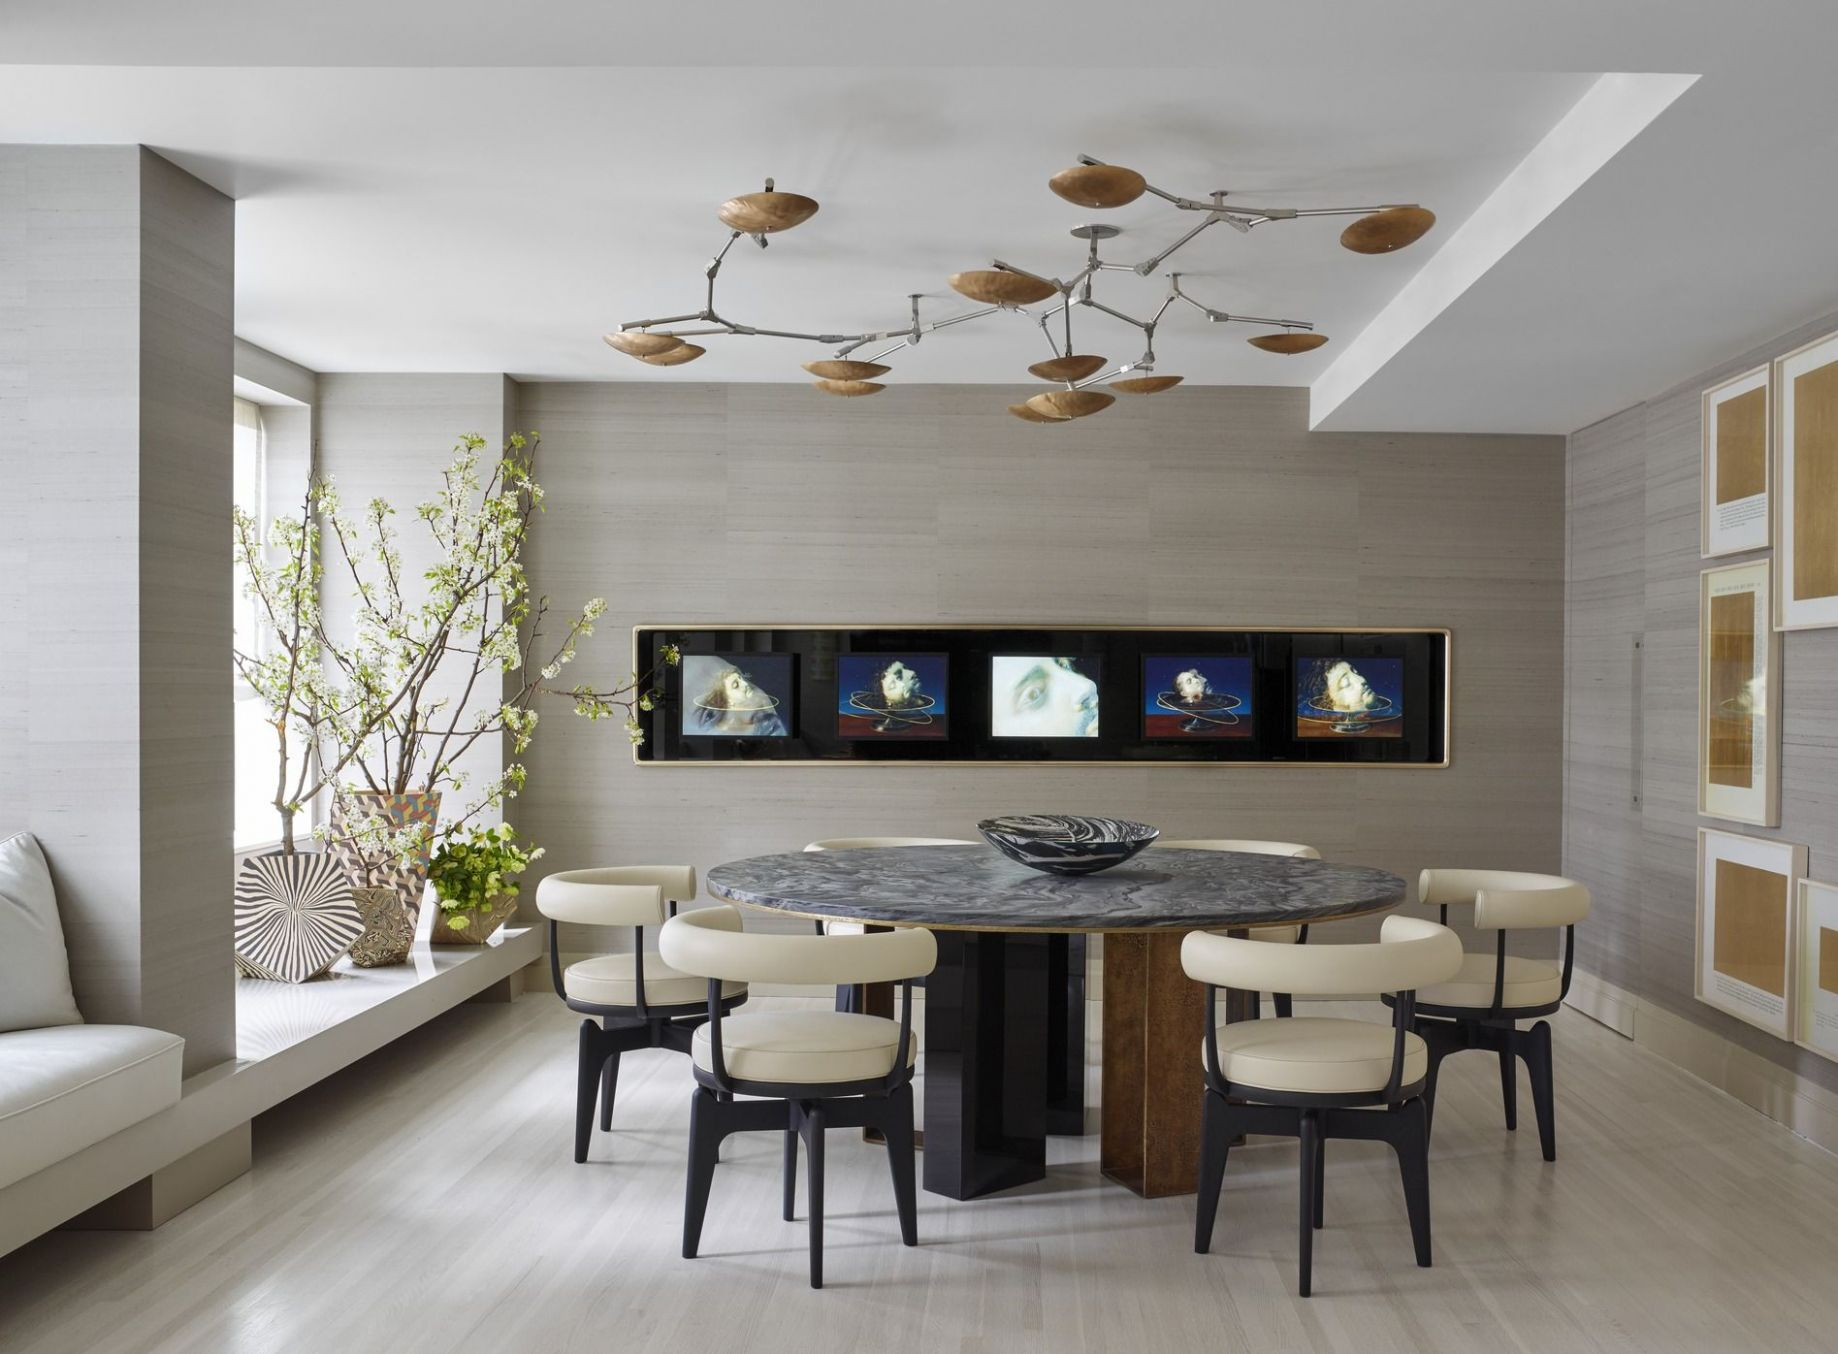 12 Modern Dining Room Decorating Ideas - Contemporary Dining Room ...